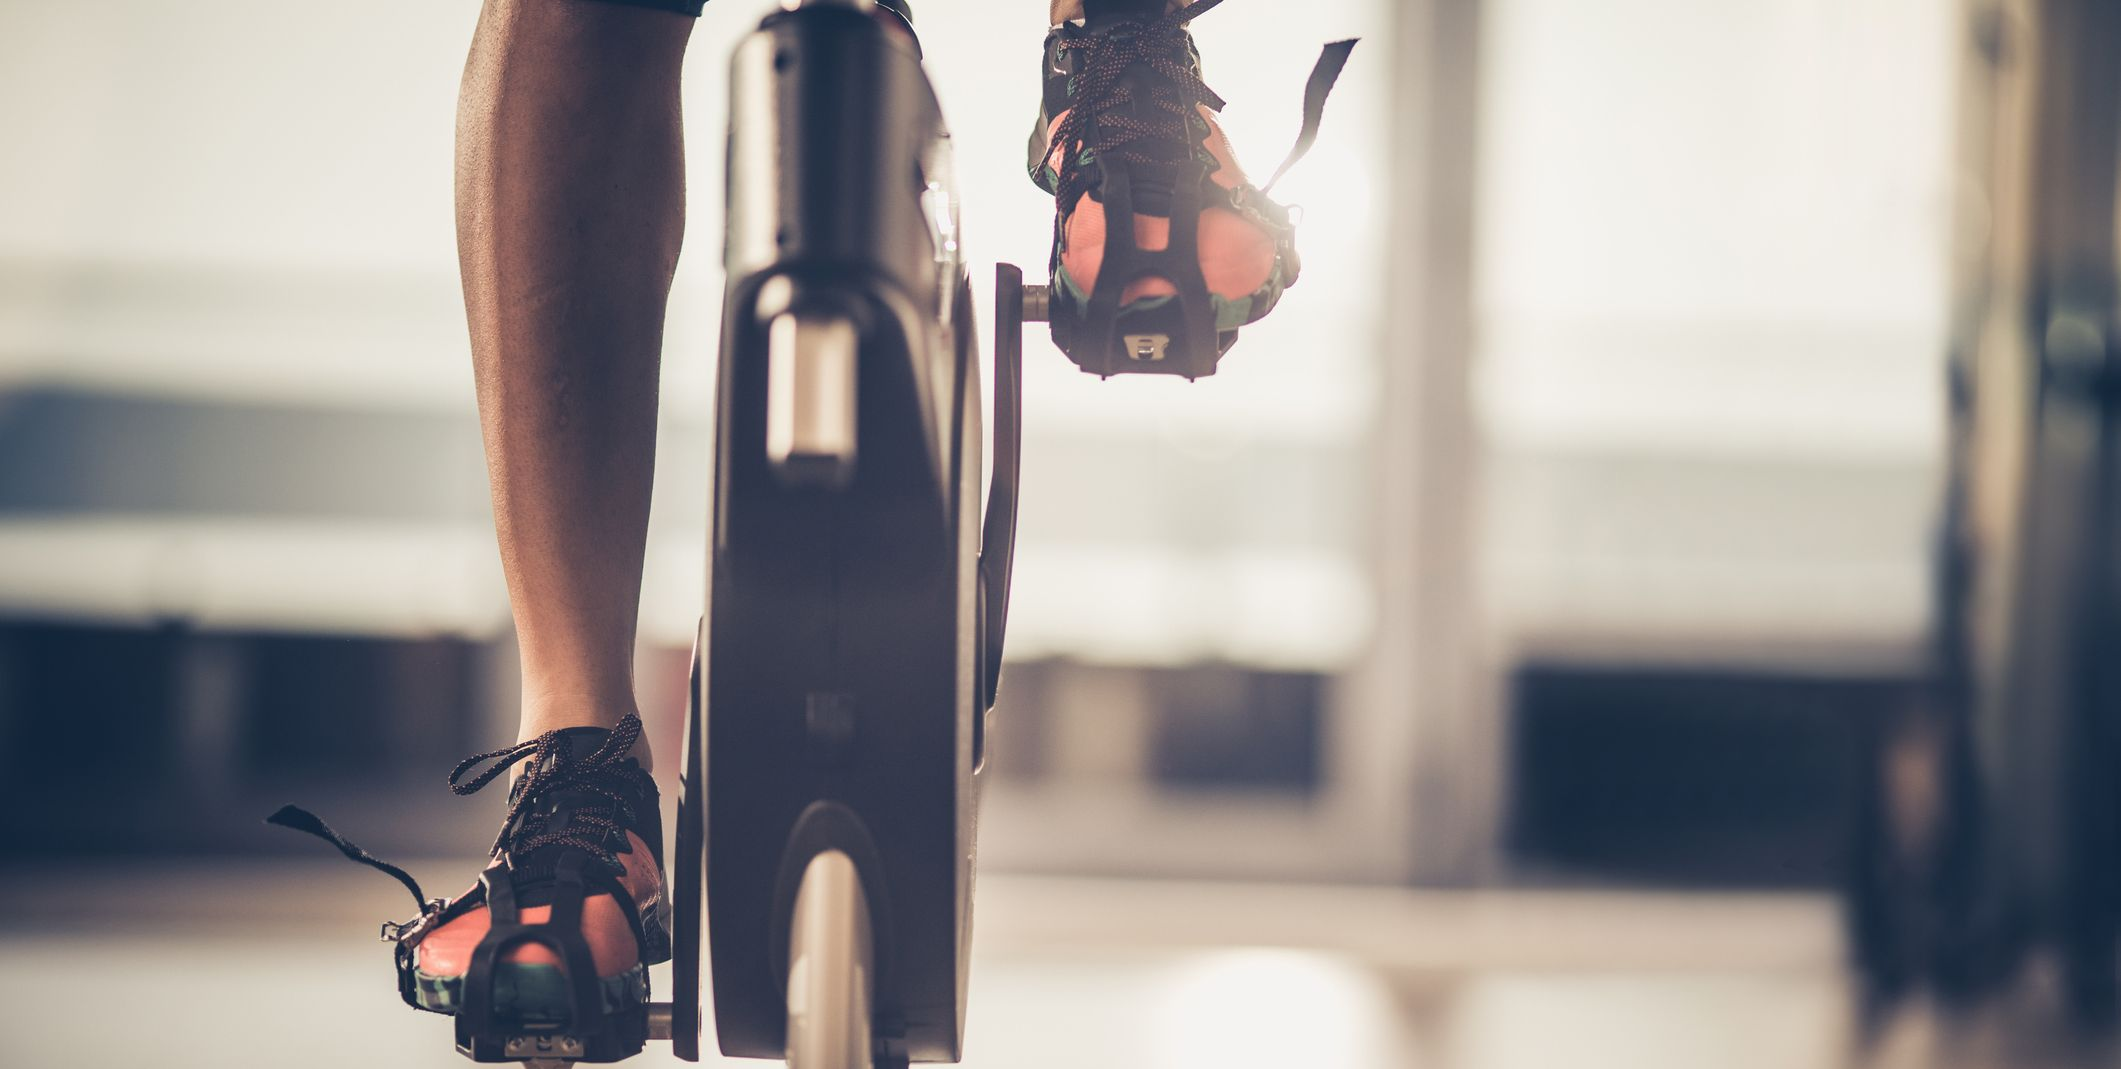 Unrecognizable athlete cycling on stationary bike in a health club.